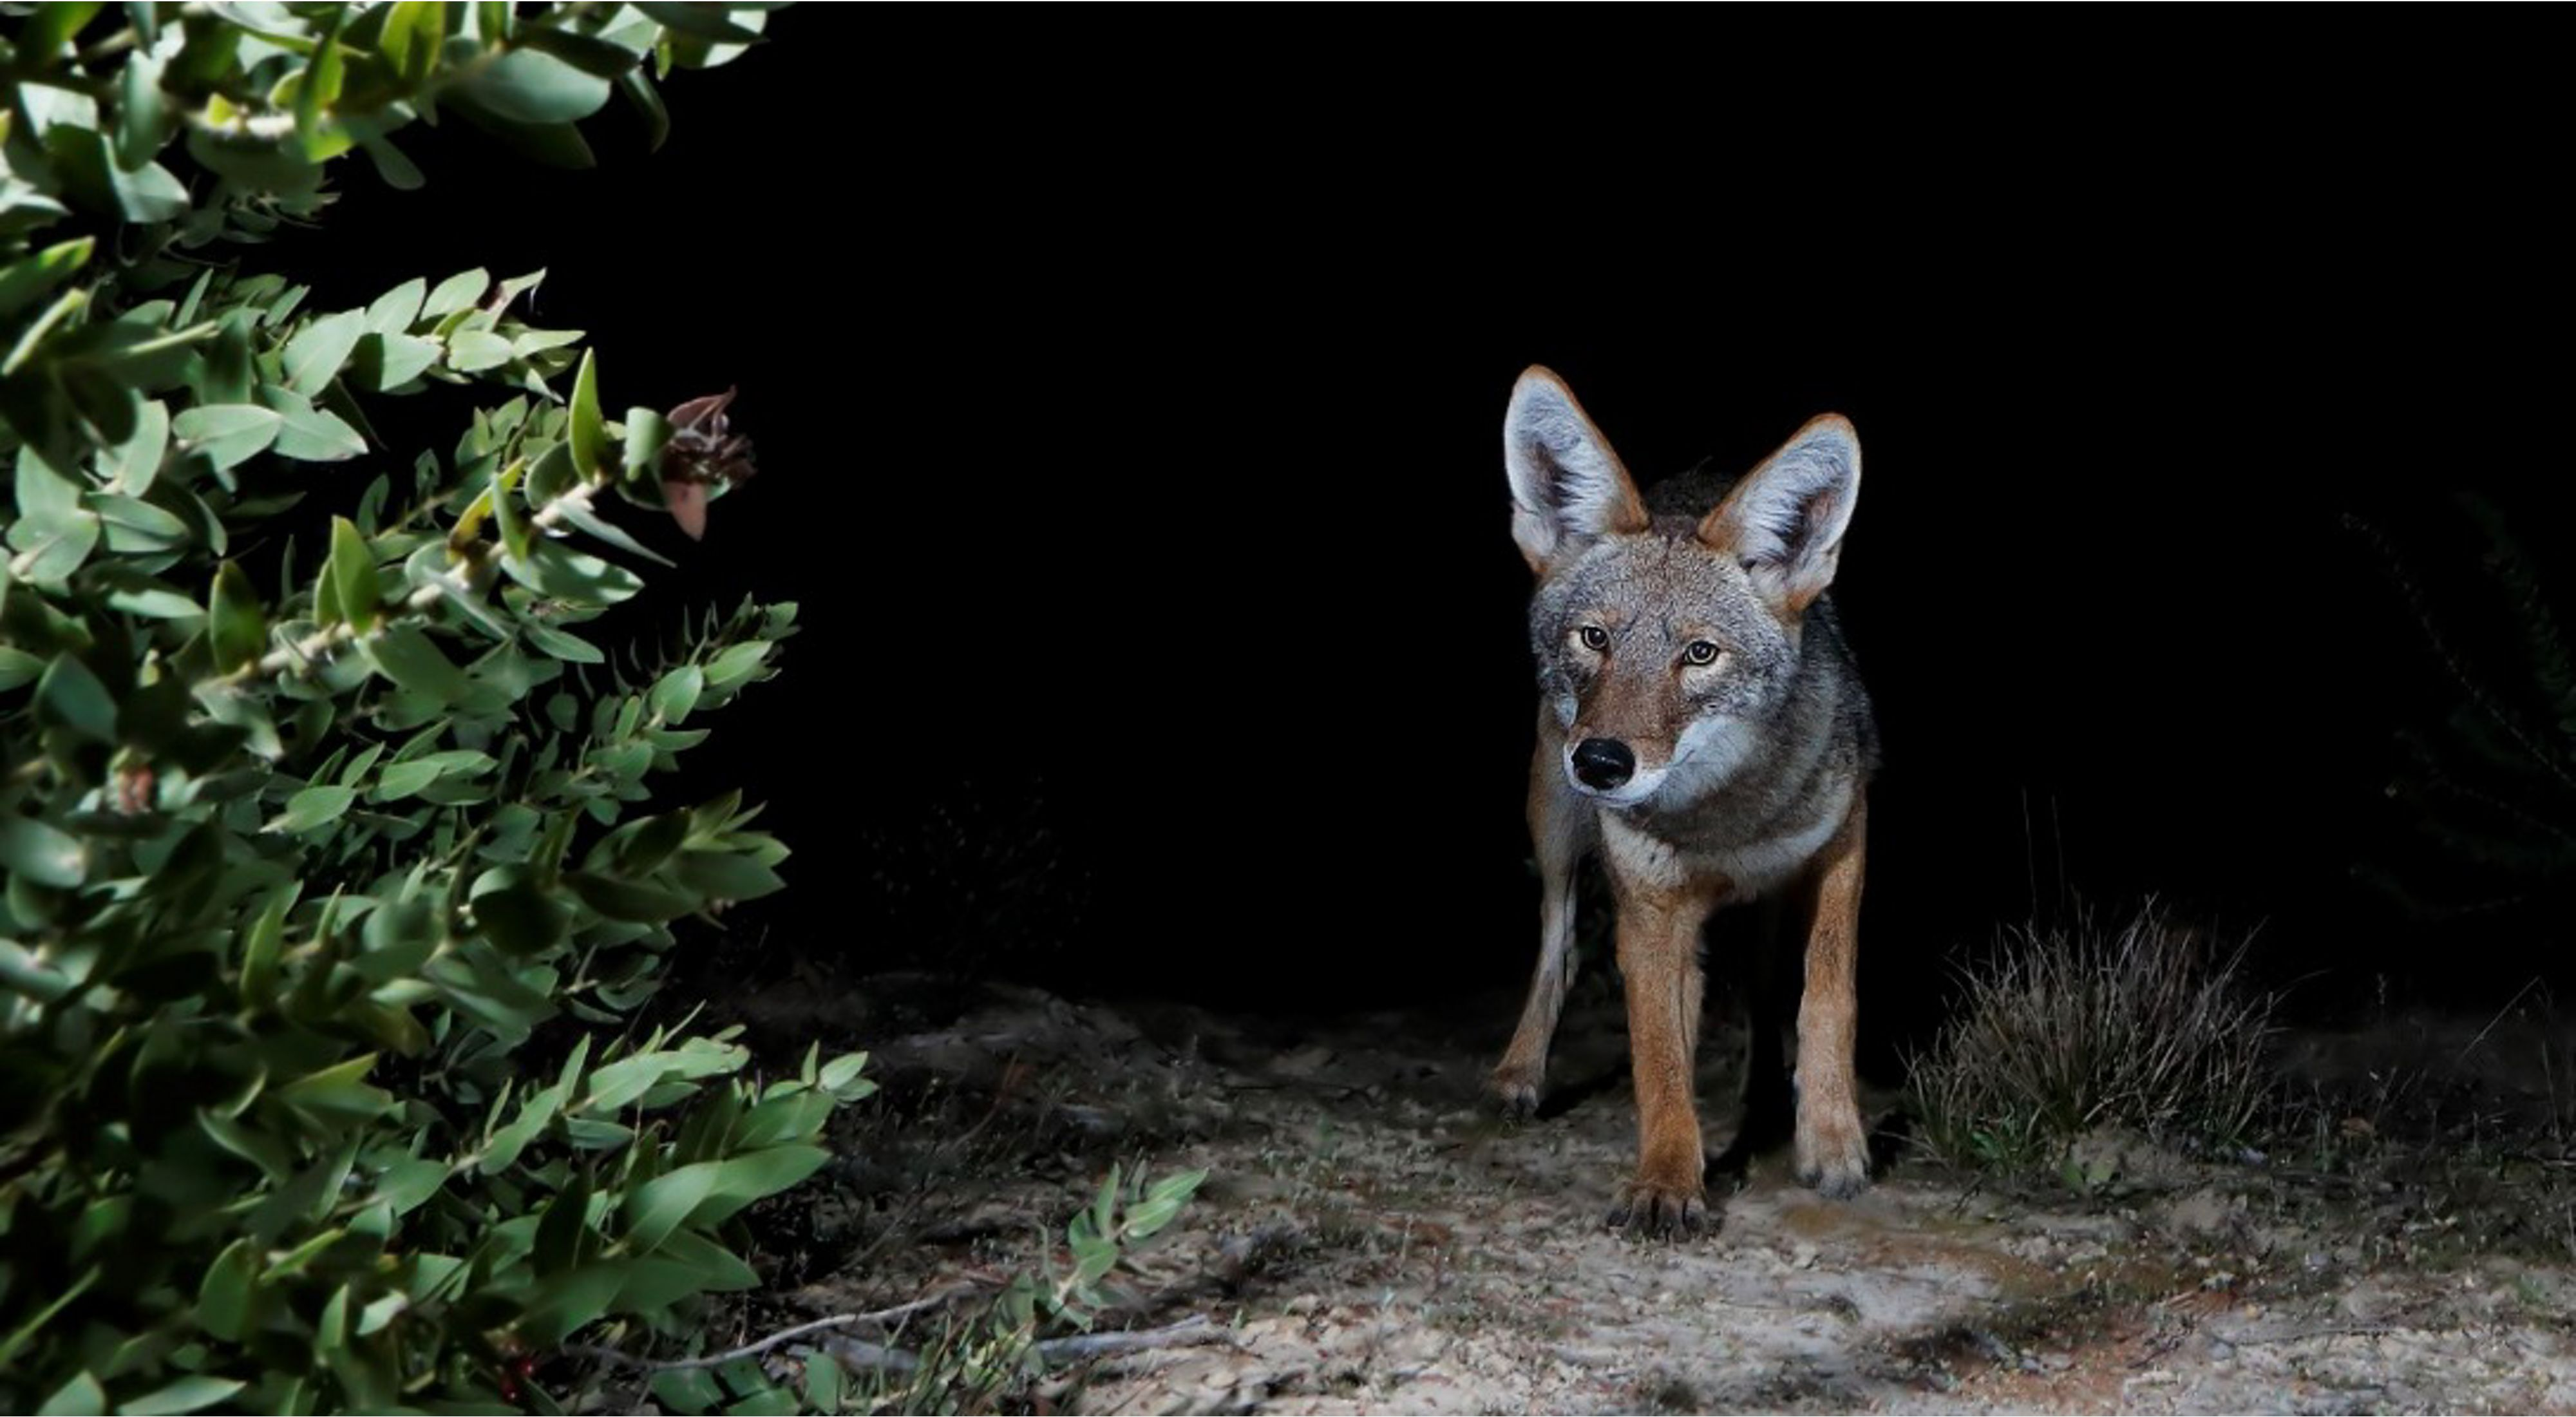 A coyote walks towards the camera on a sandy path in the dark.